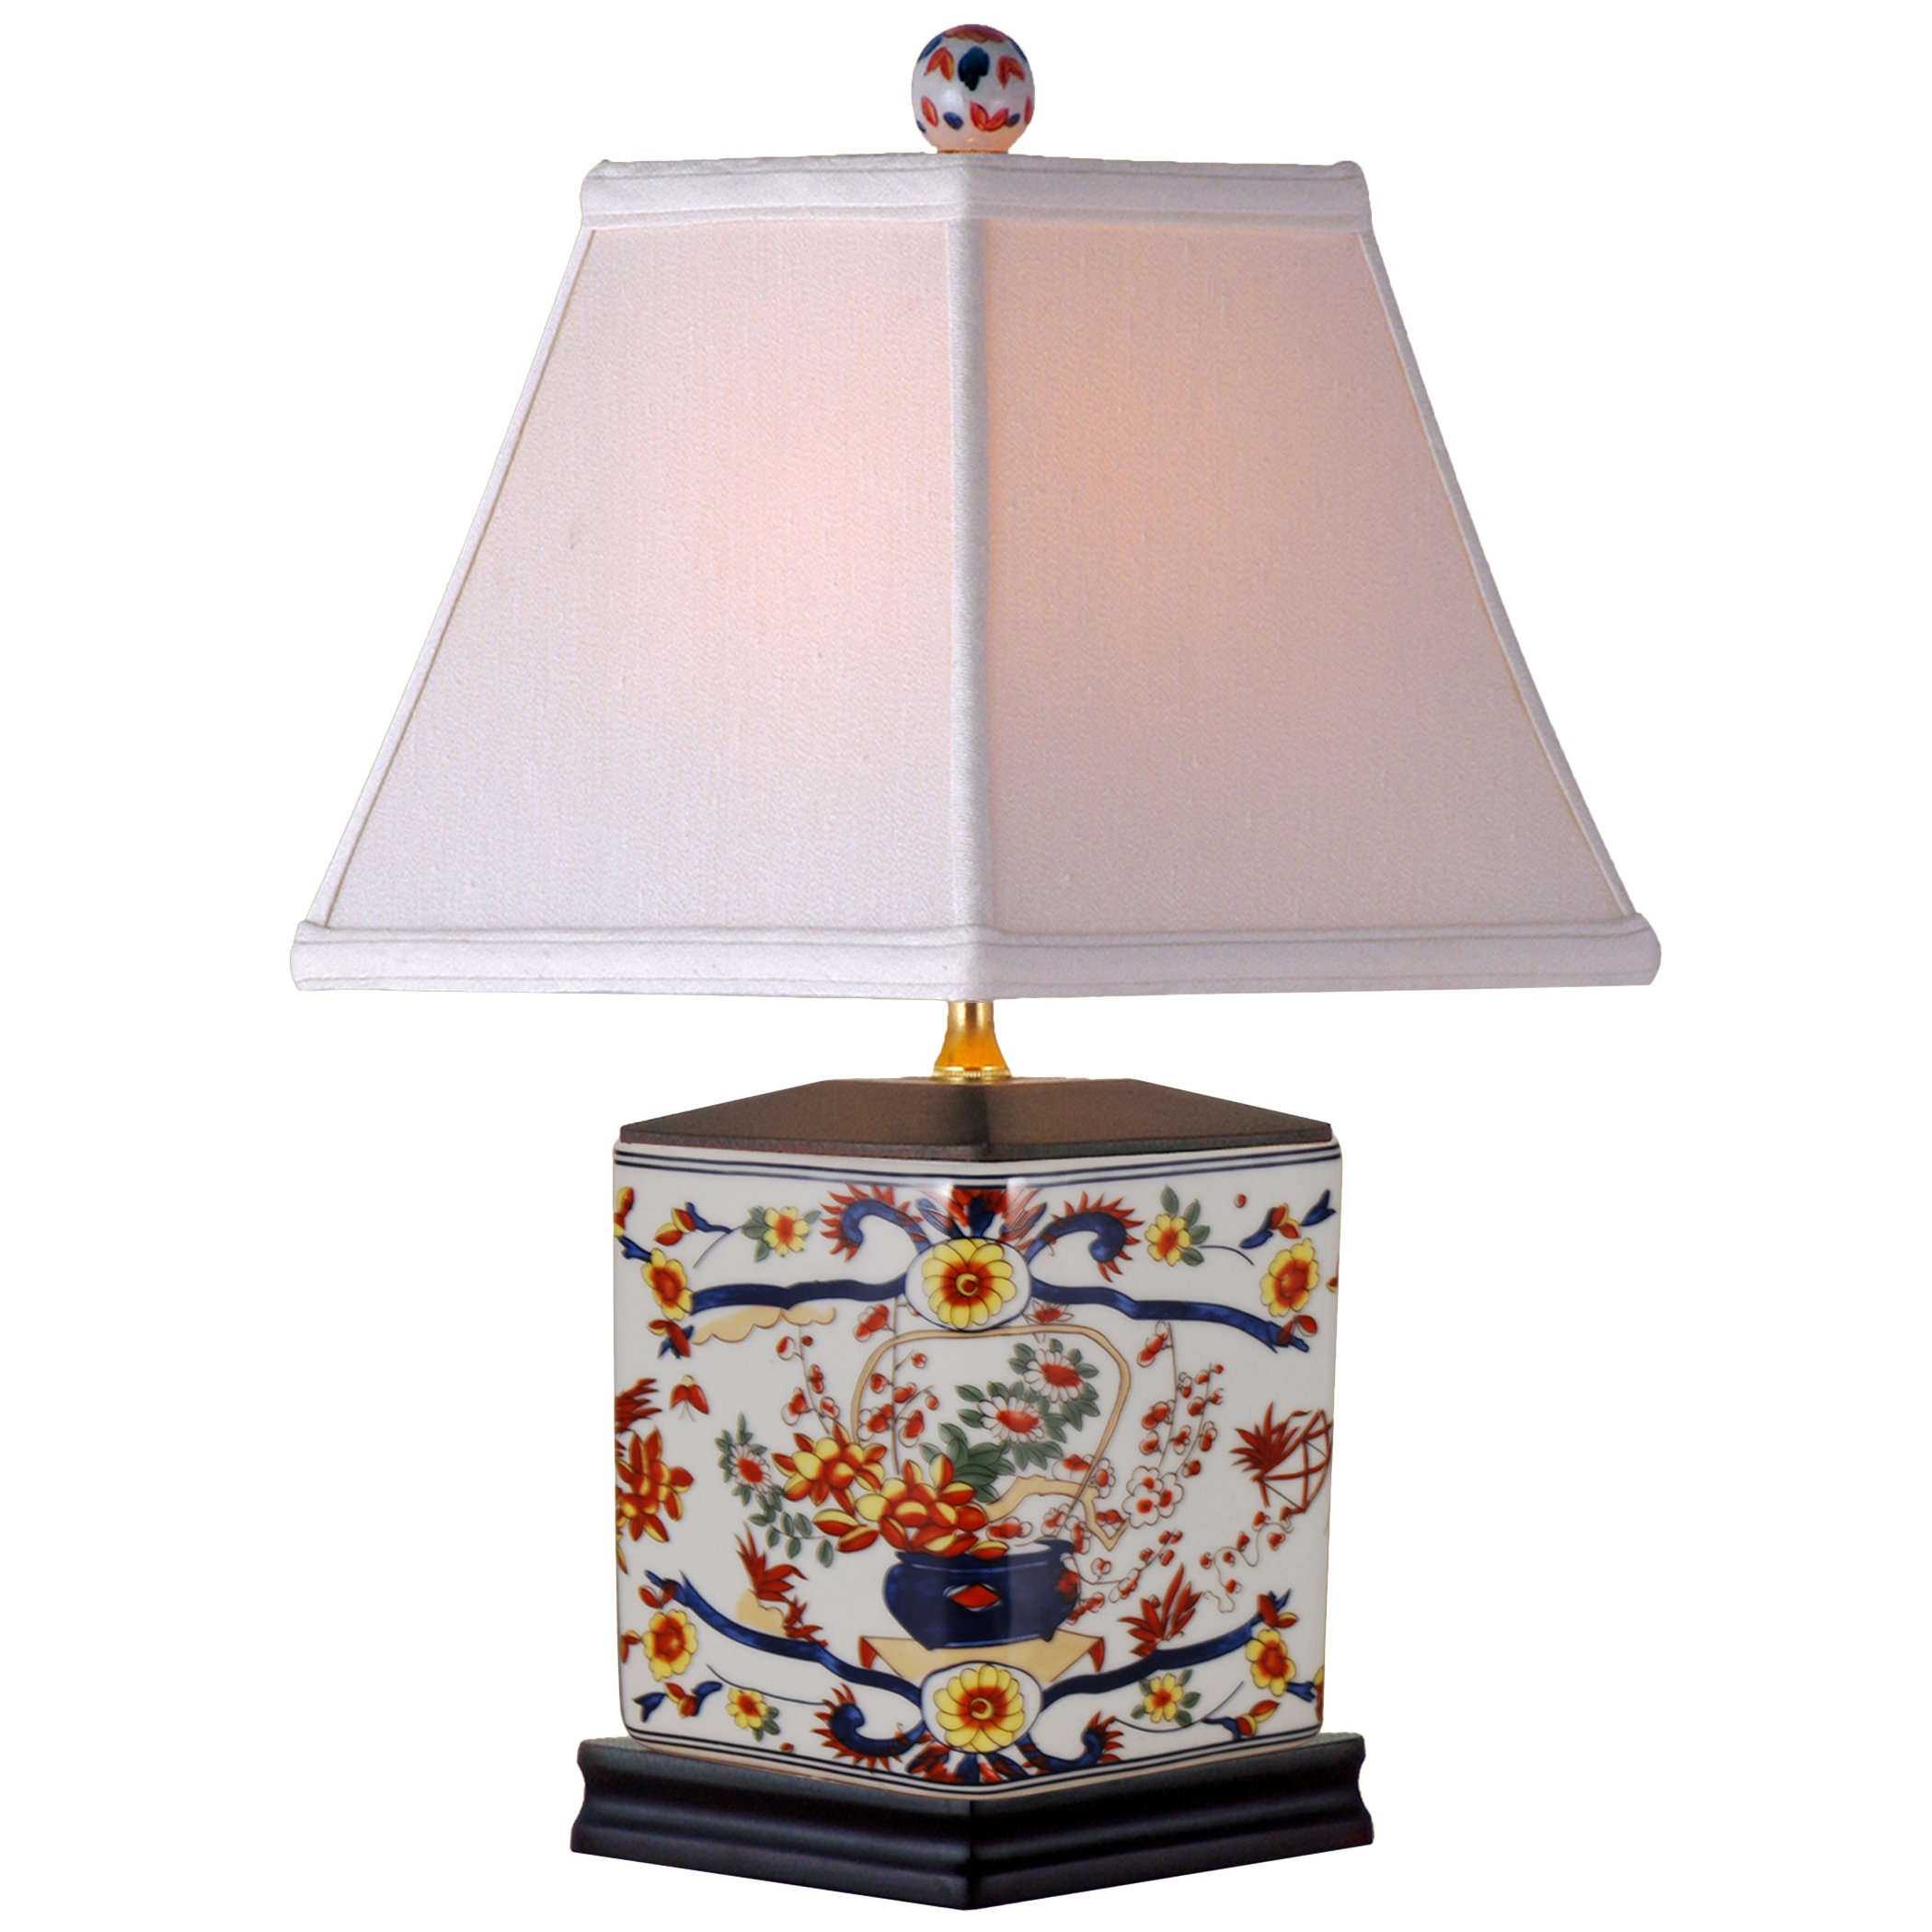 oriental furniture floral pencil table lamp imari accent lamps pottery barn beds oak side with shelf outdoor drum chest cupboard vintage brass coffee base round console storage